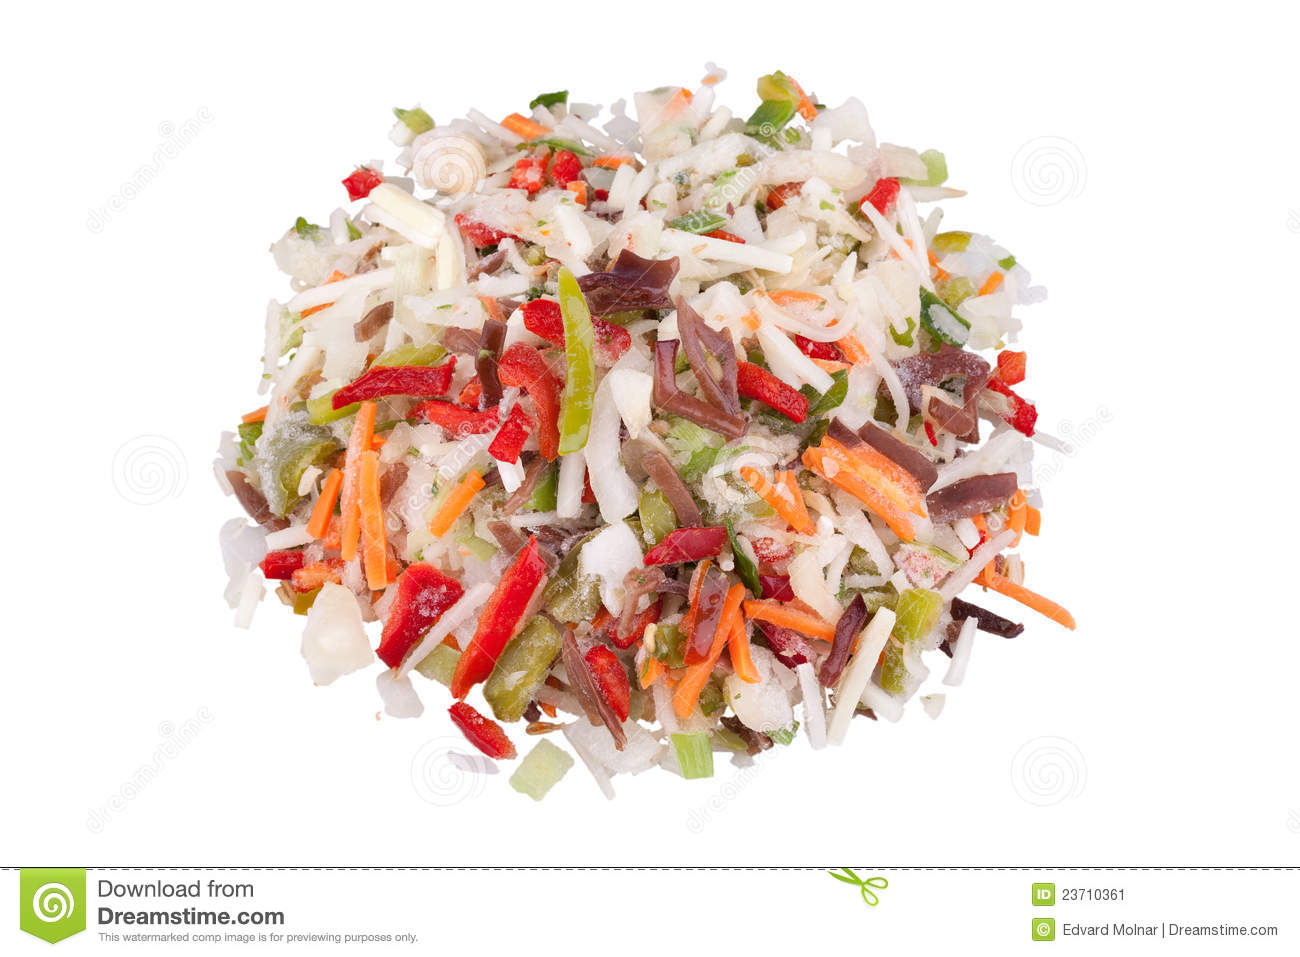 How to Use Frozen Vegetables in Stir-Fries Epicuriouscom